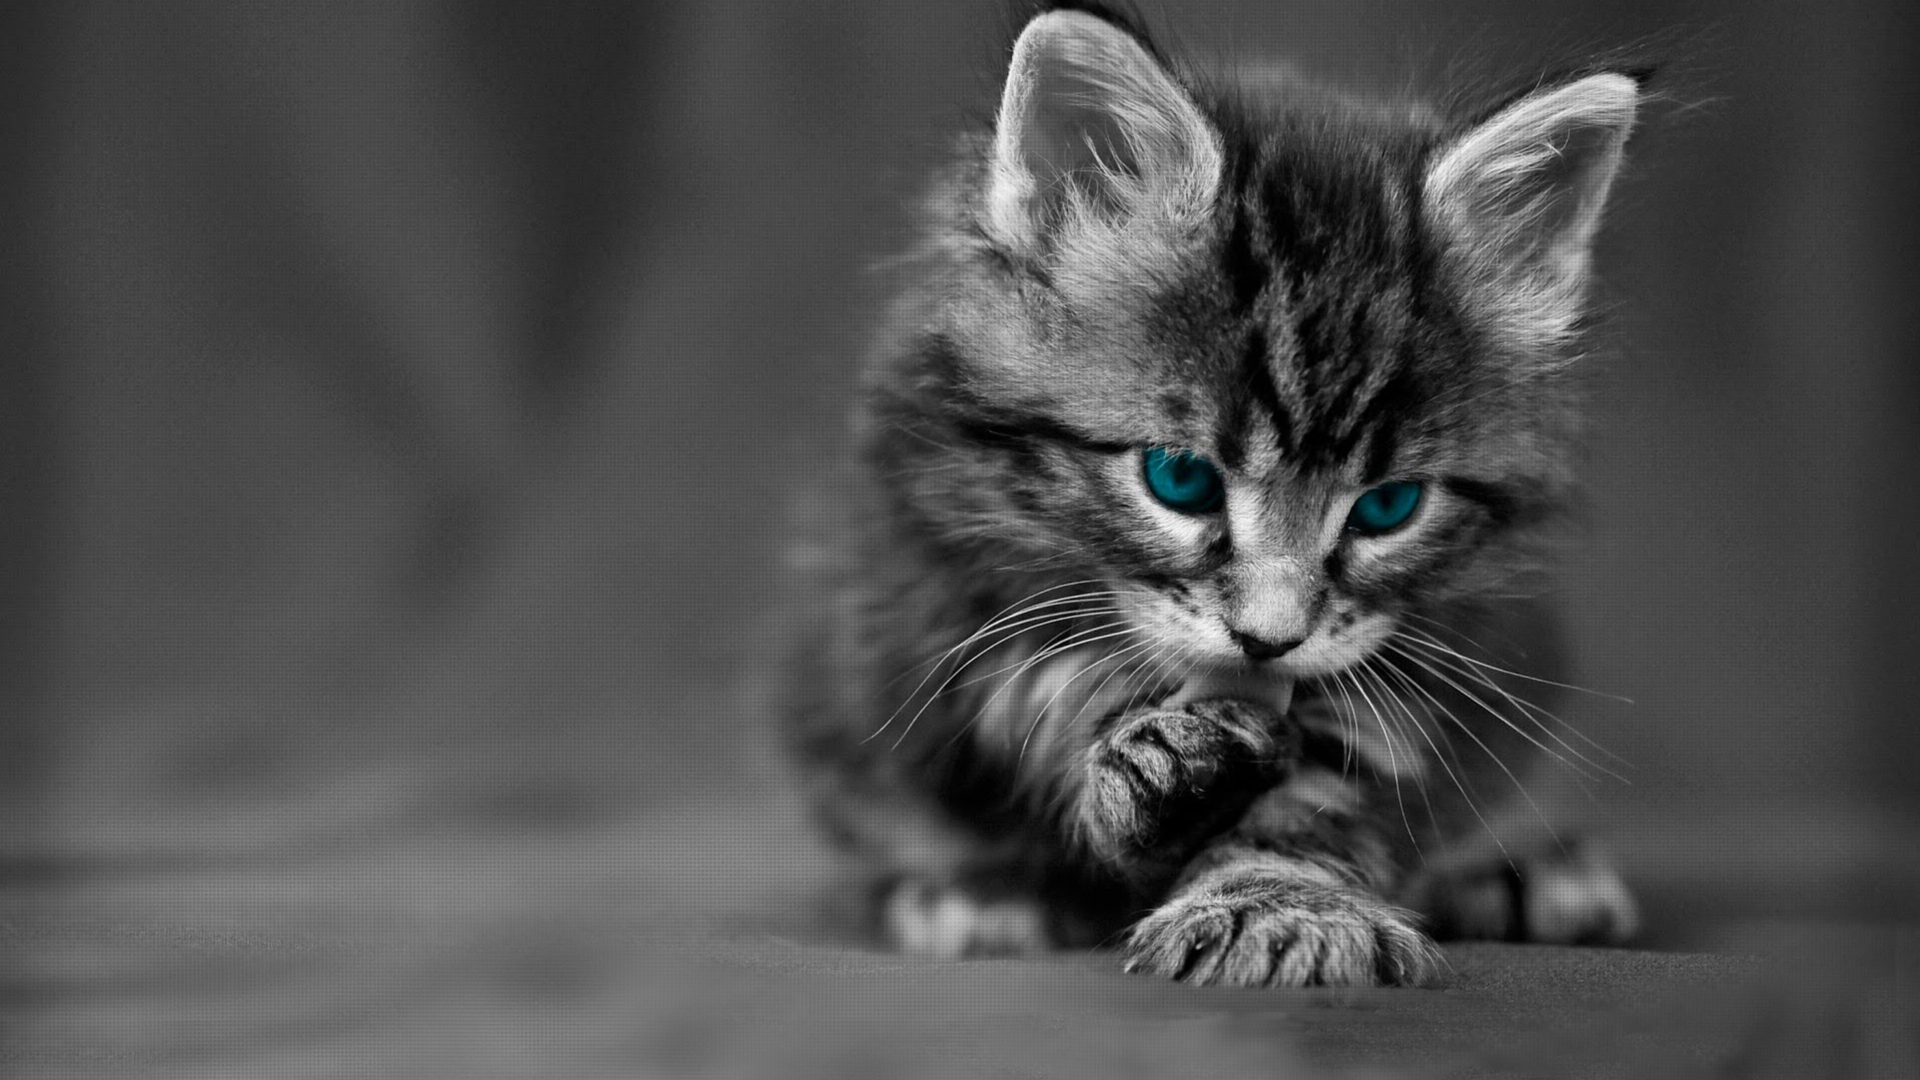 Black And White Striped Wallpaper Desktop Wallpaper Hd Gray Kitten With Blue Eyes